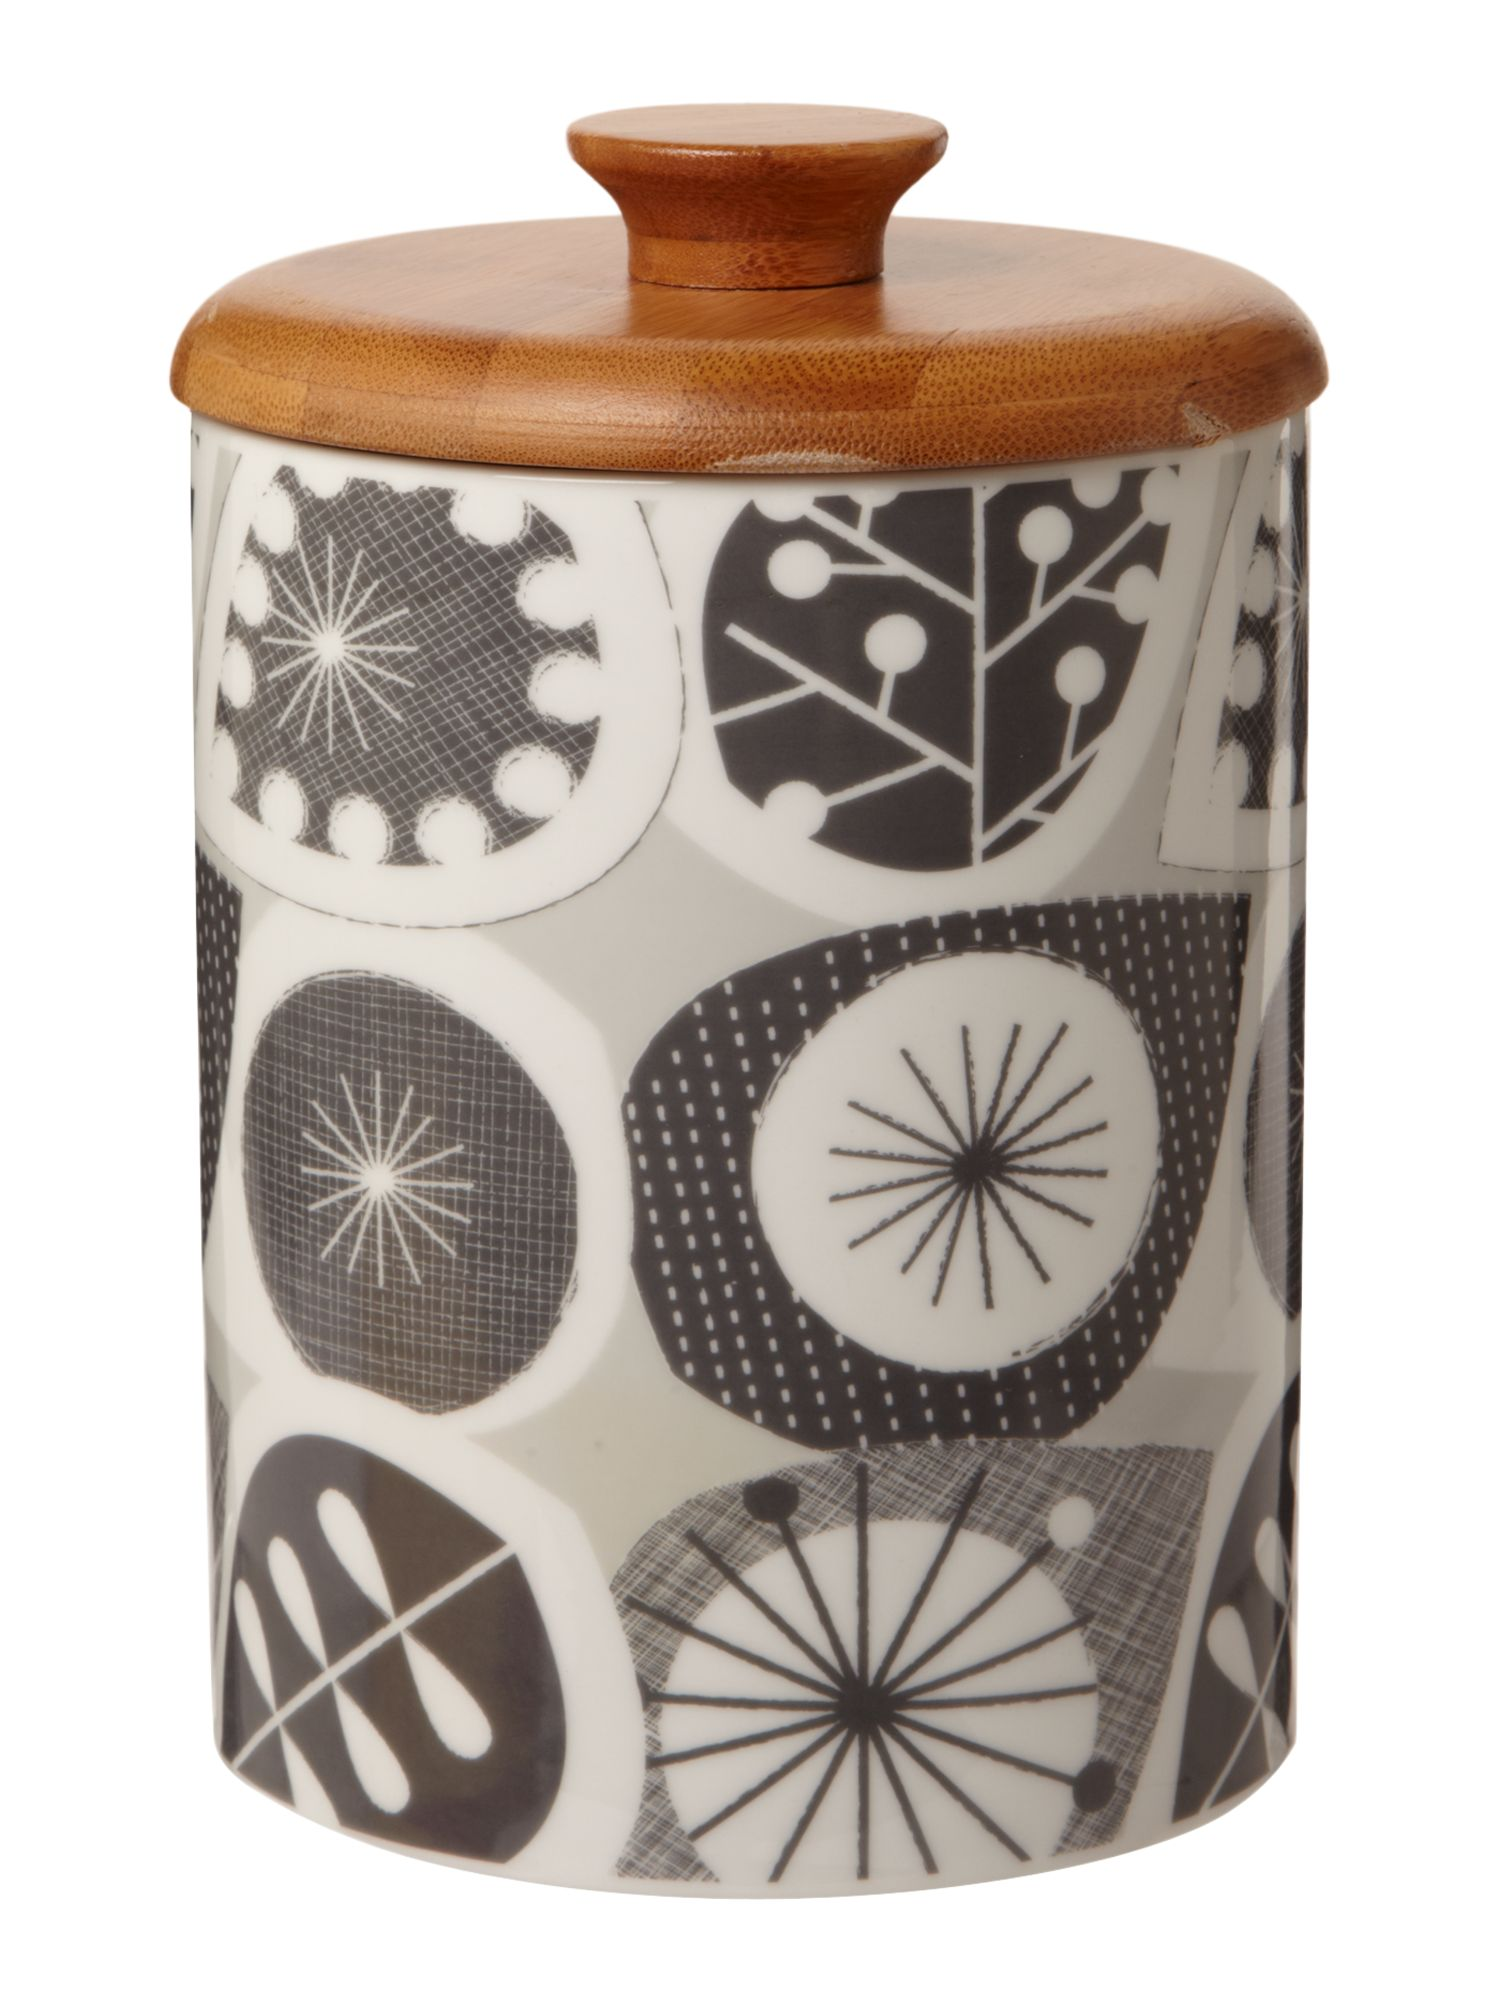 Seed pod storage jar, grey